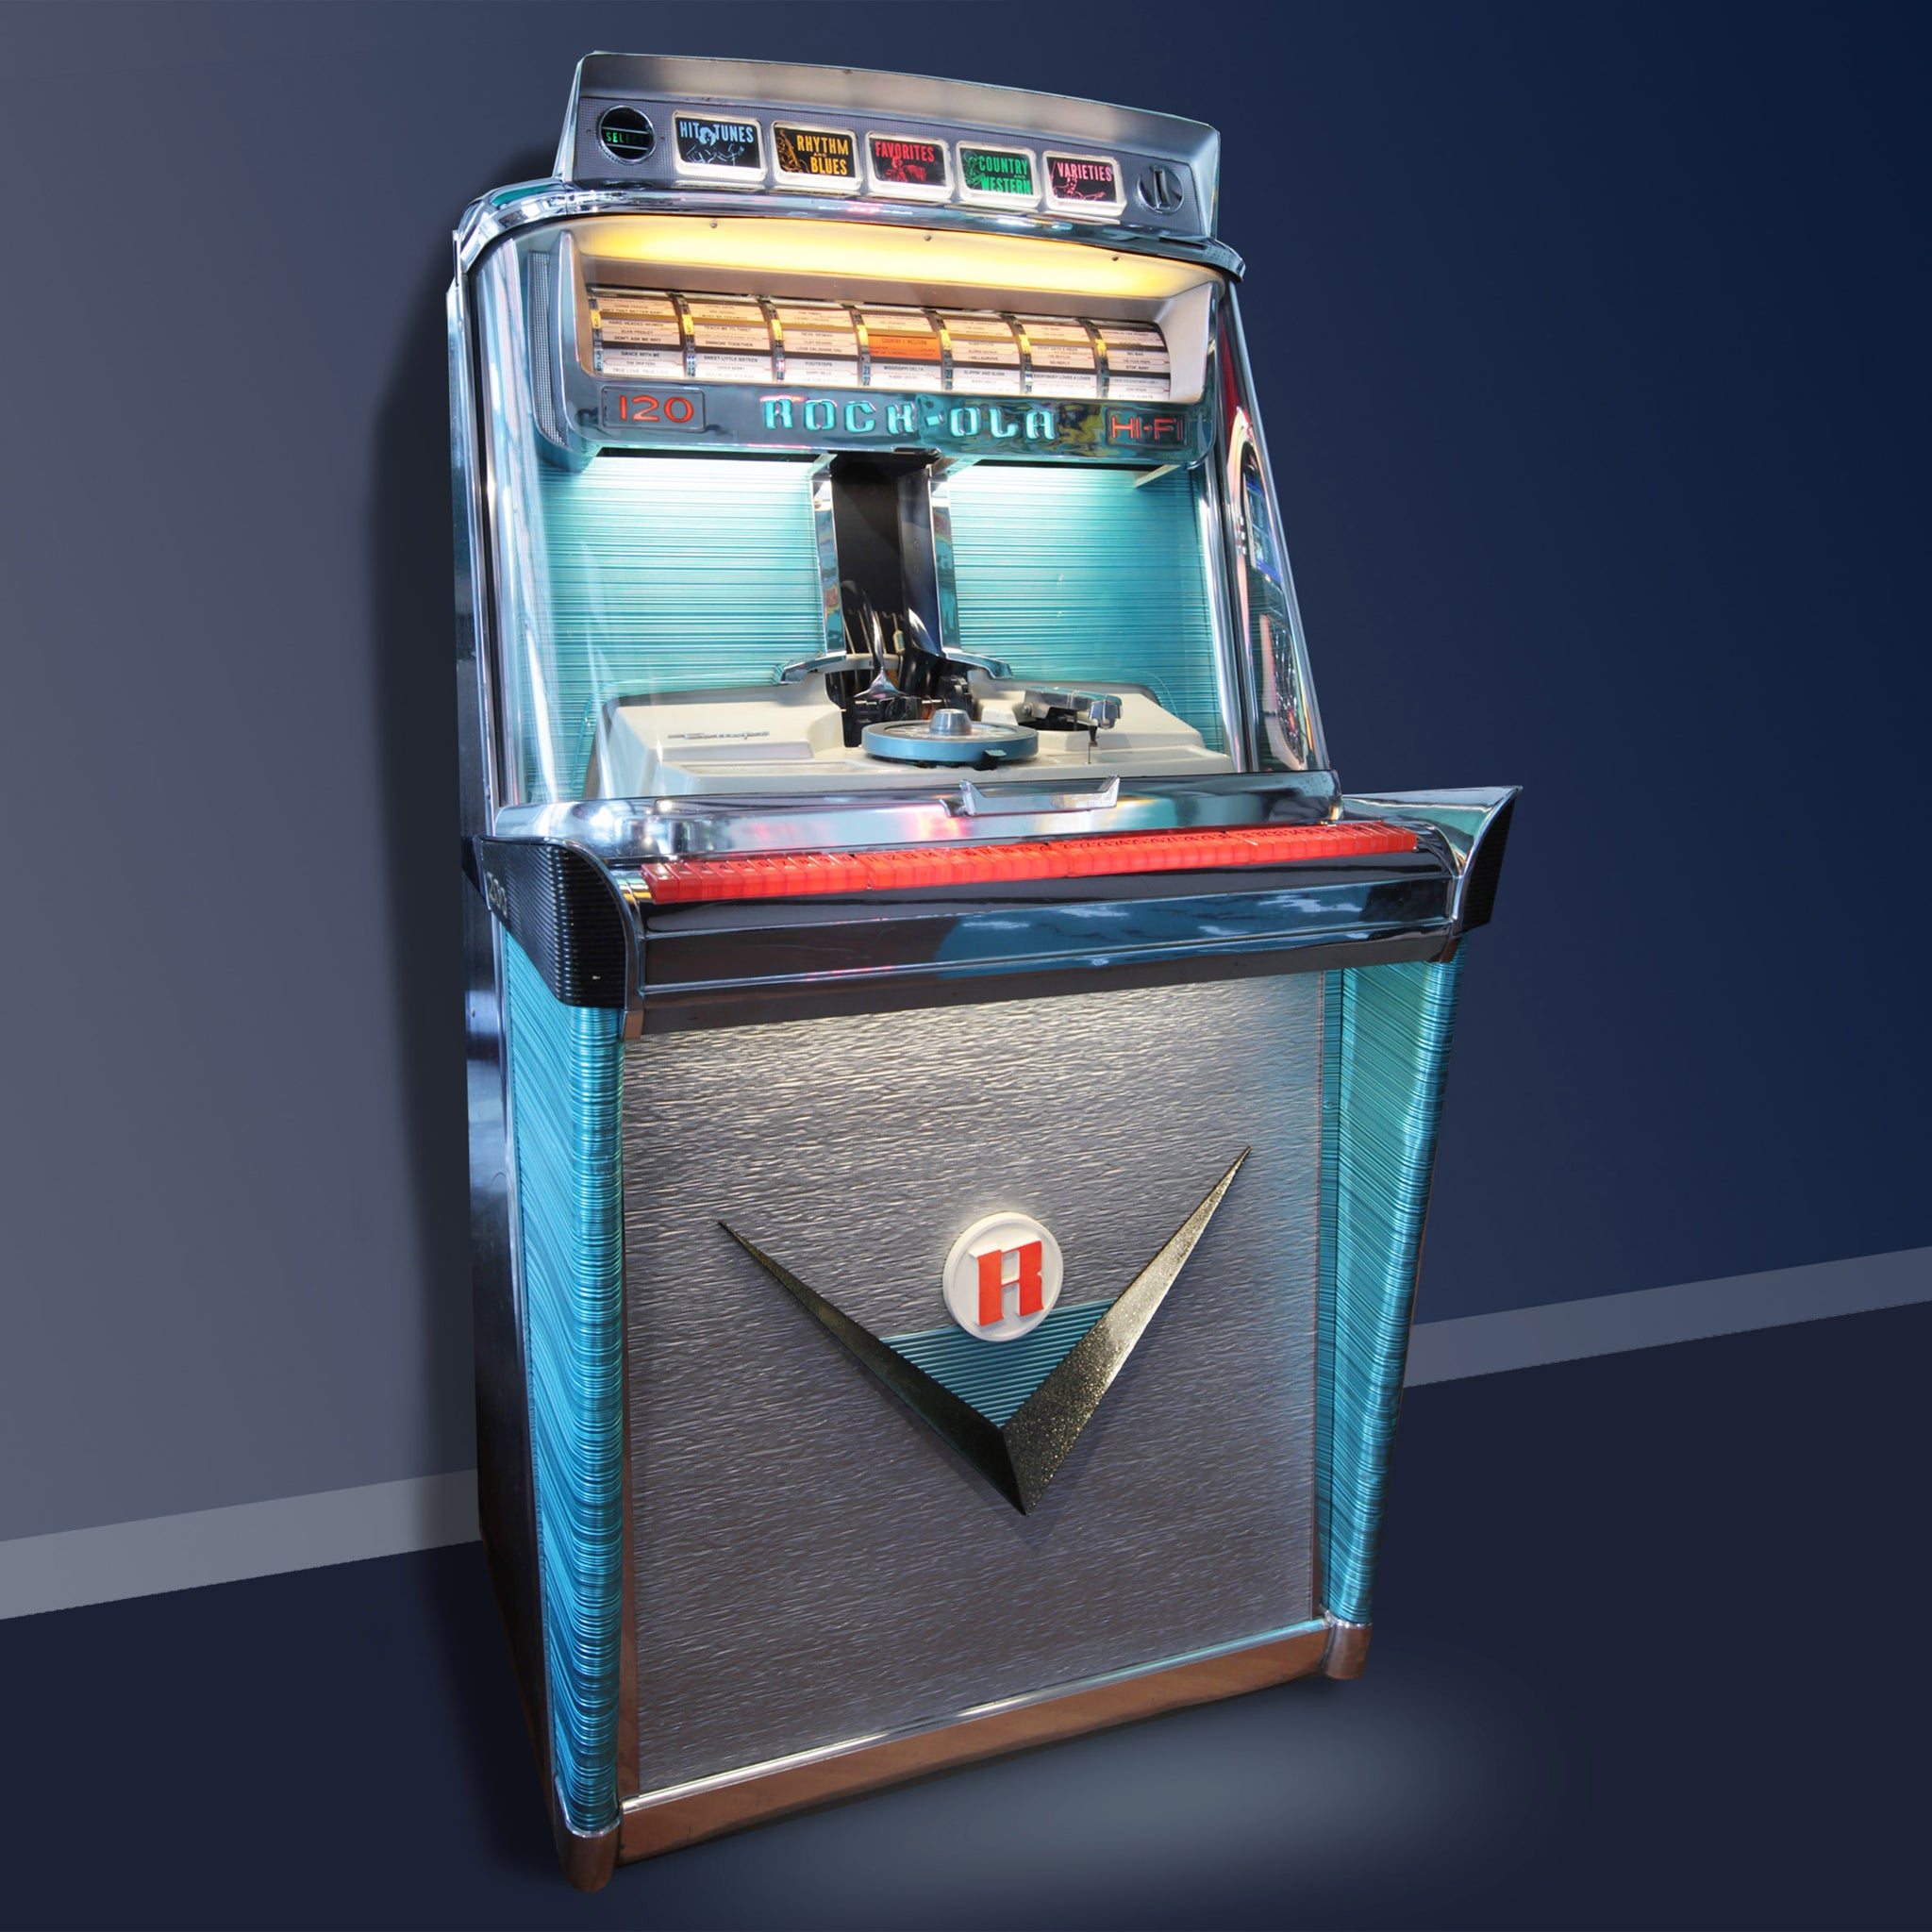 The 1968 Rock Ola Tempo 1 120 selection Jukebox